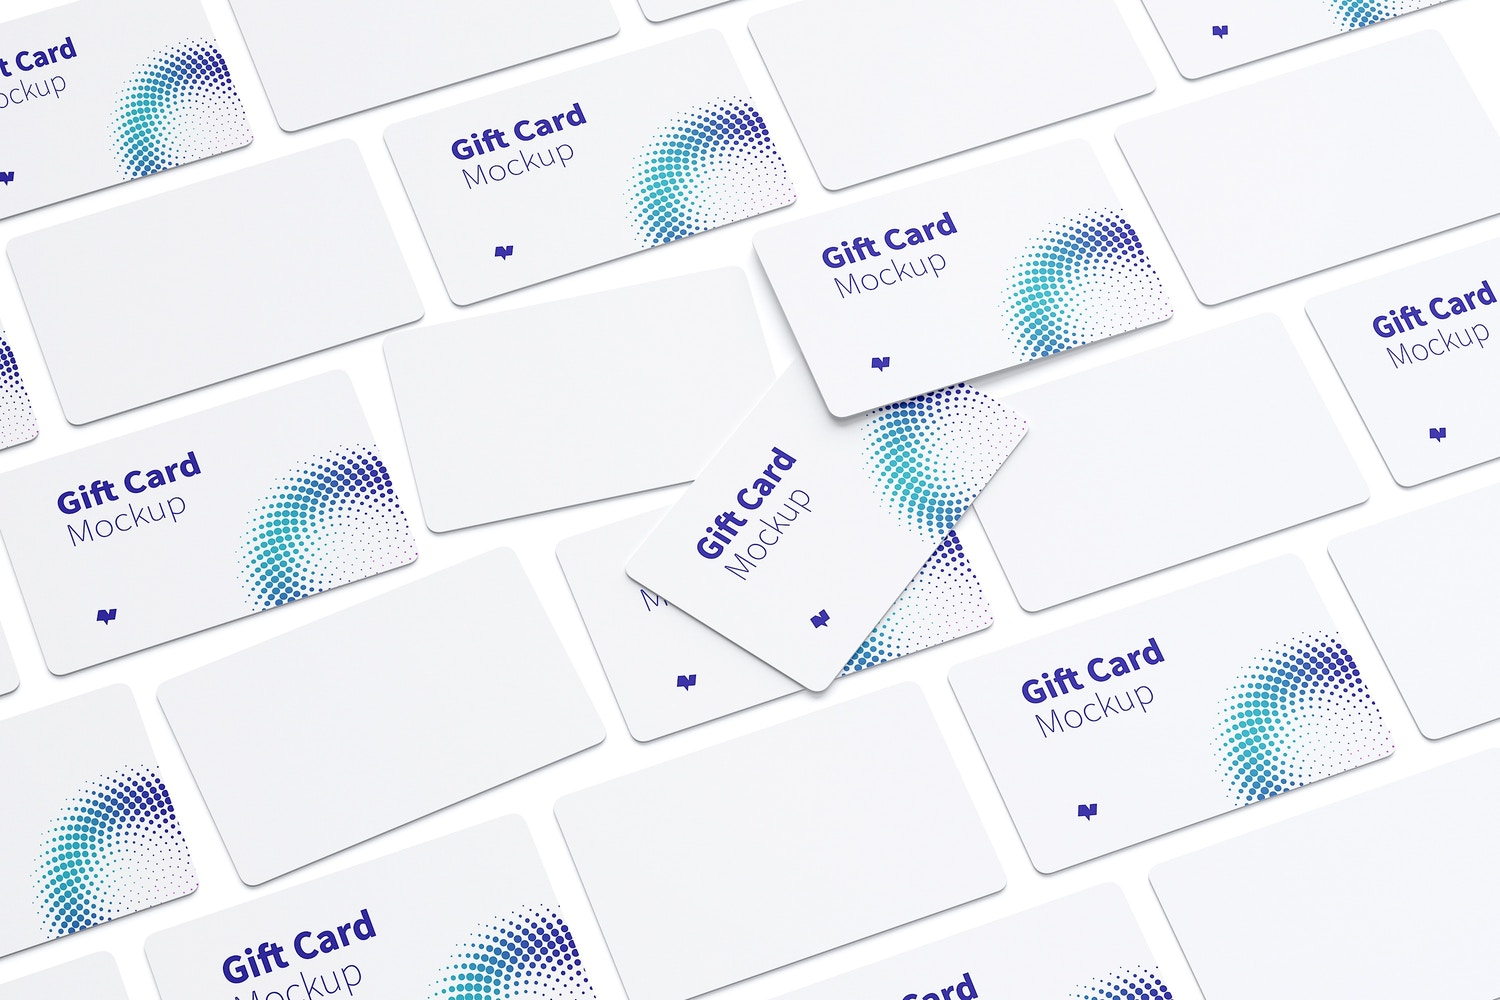 Gift Card Mockup 04 by Original Mockups on Original Mockups